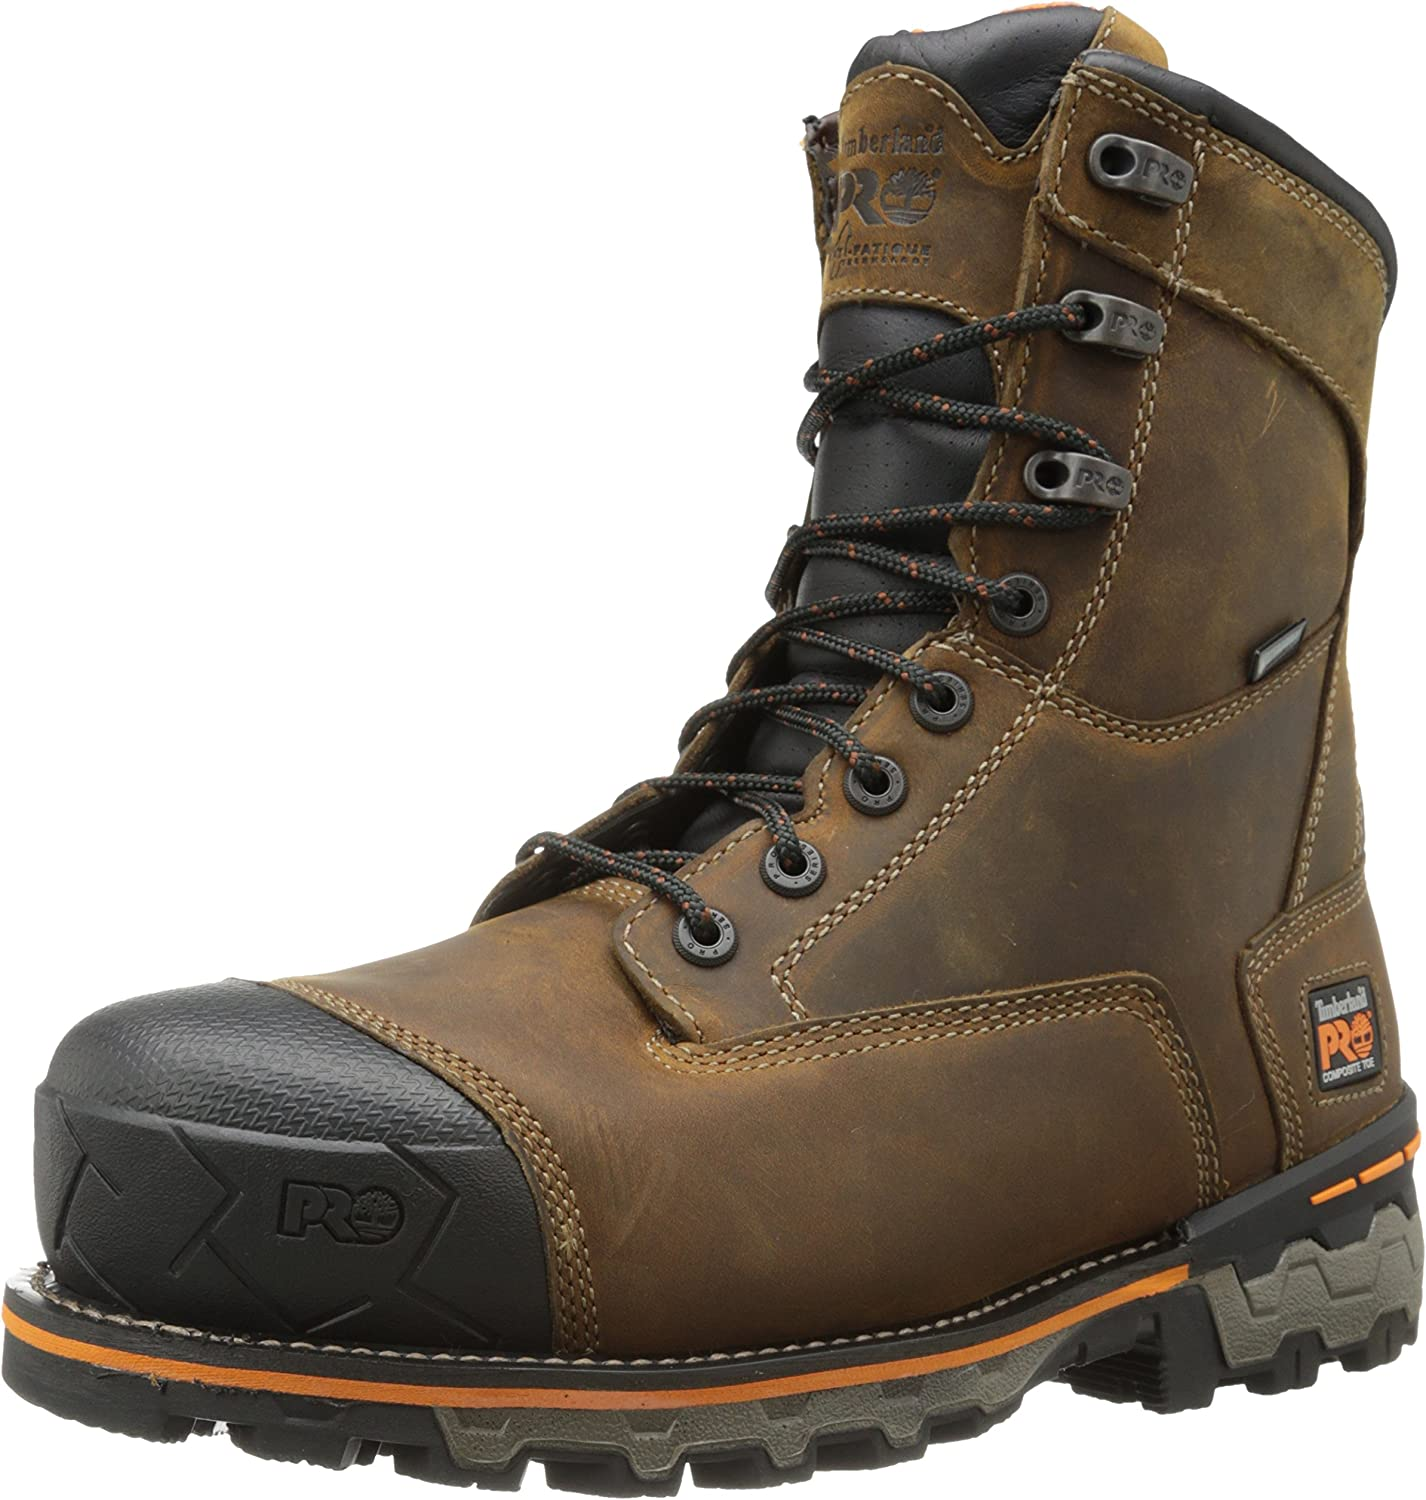 Timberland PRO PRO PRO Men's 8 Inch Boondock Composite Toe WP Industrial Work Boot,Brown Oiled Distressed Leather,7.5 W US B00HNO74IC f47eb5